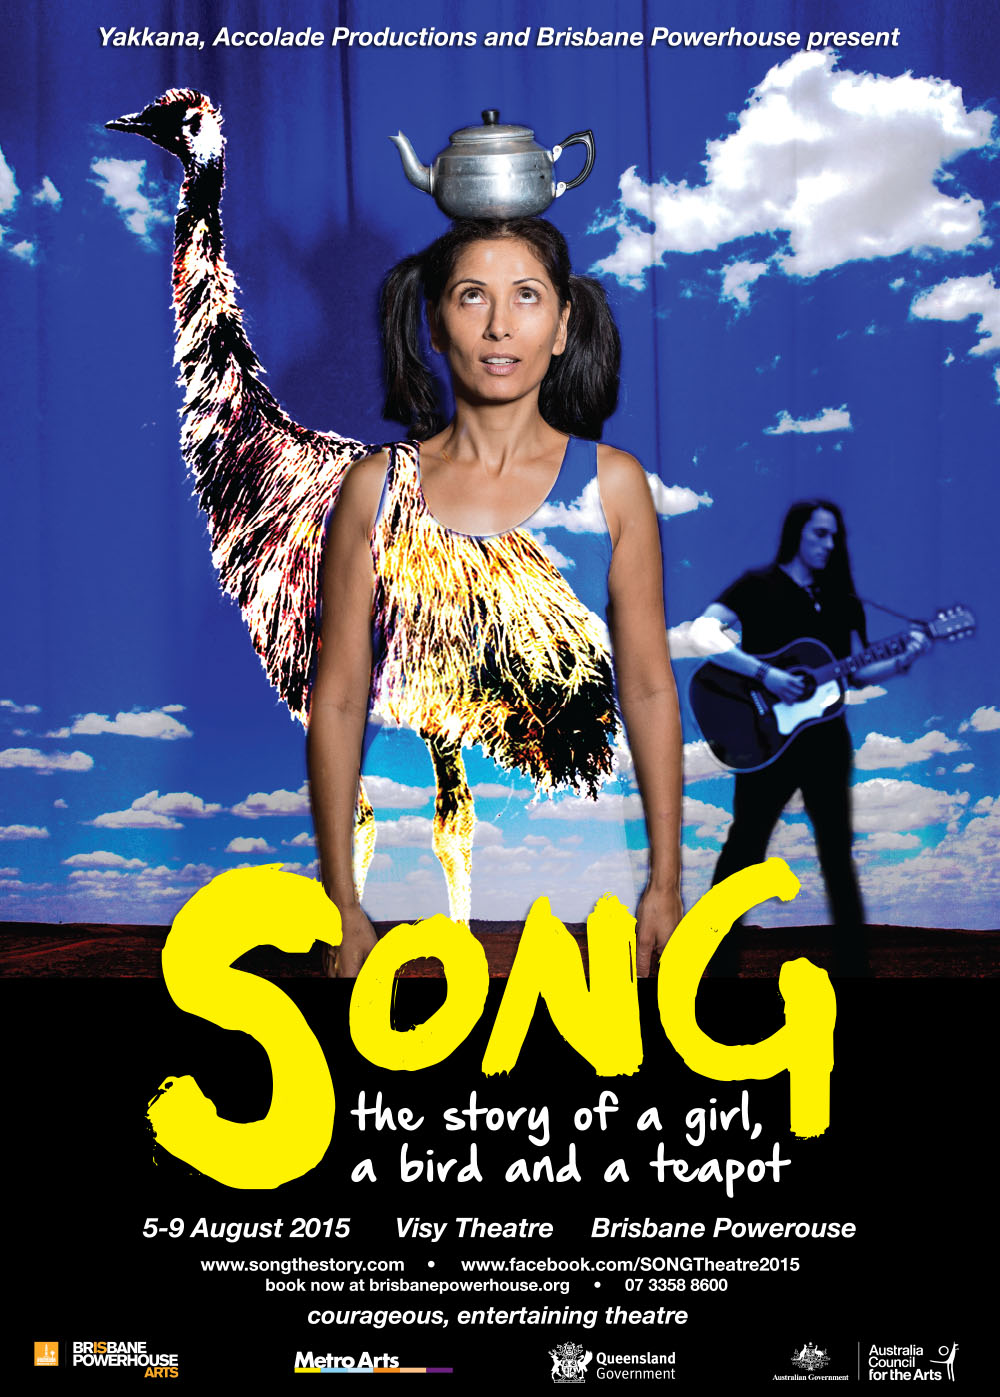 Song poster